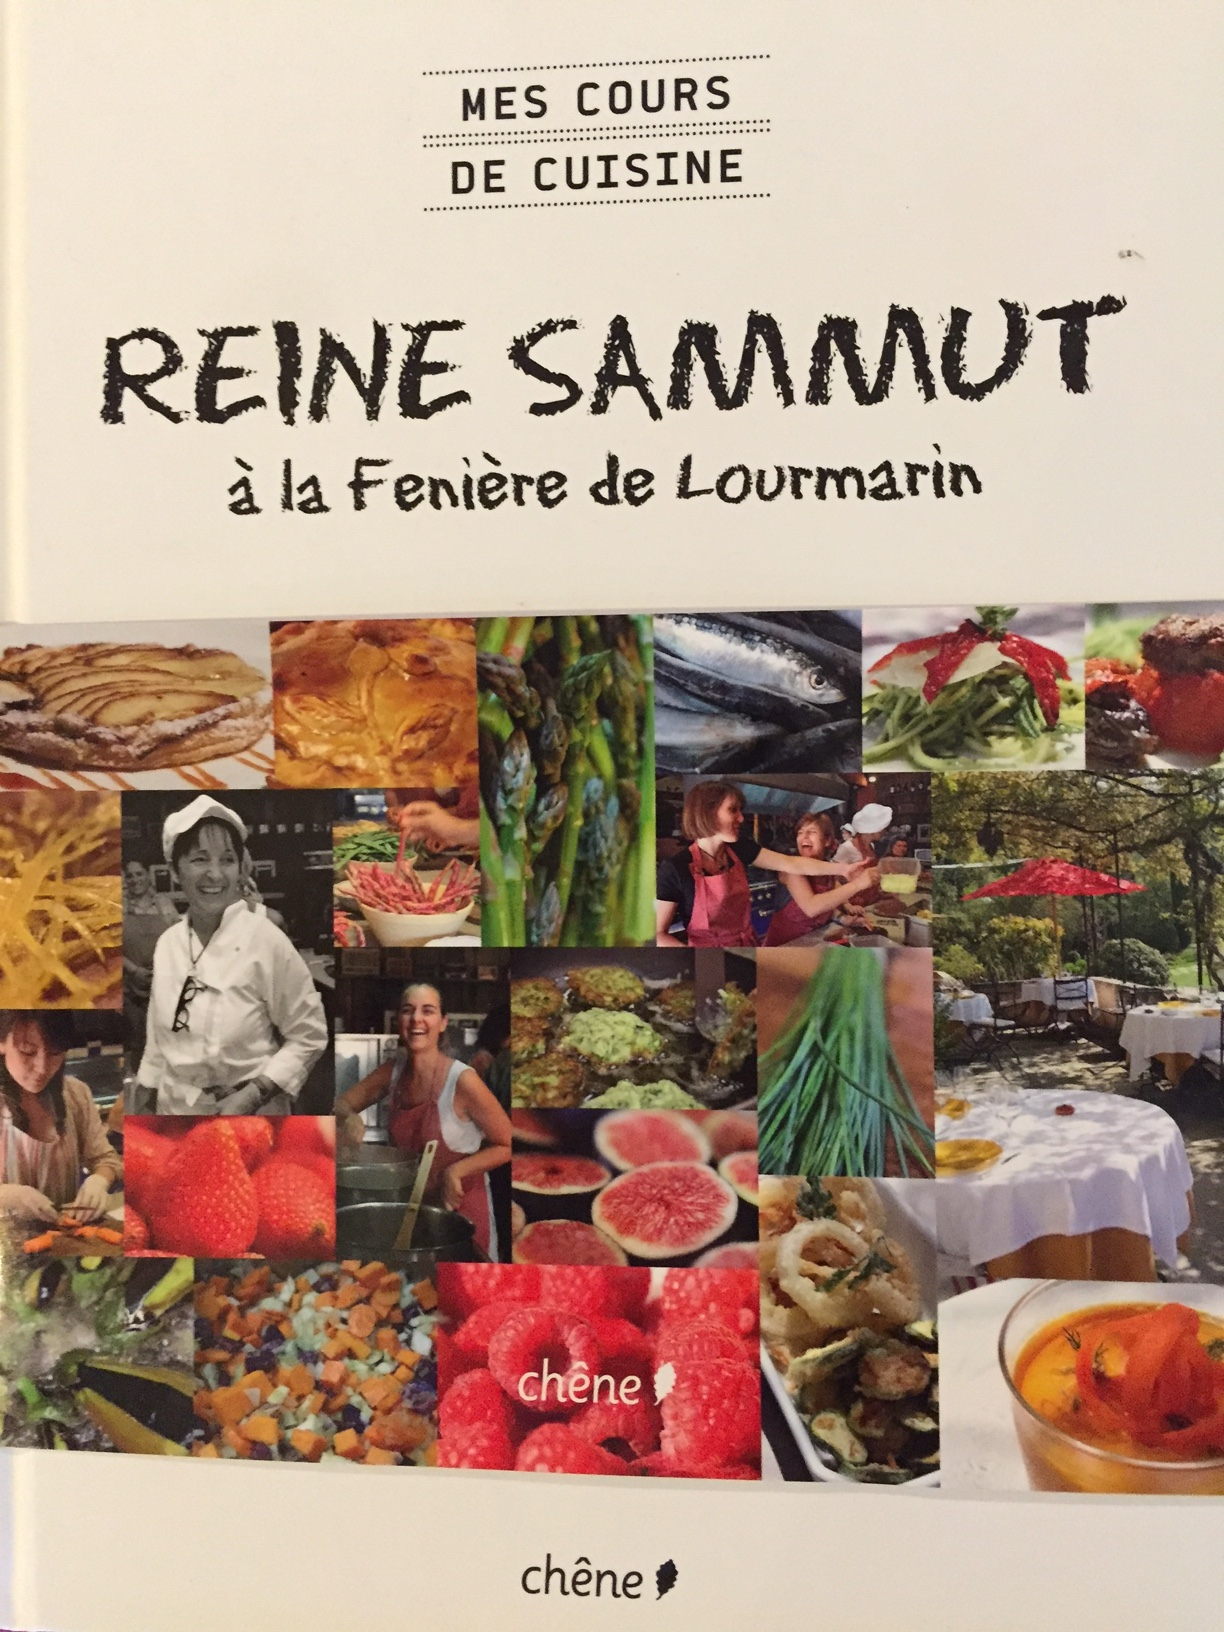 REINE SAMMUT LA FENIERE CHEF AND THE CITY